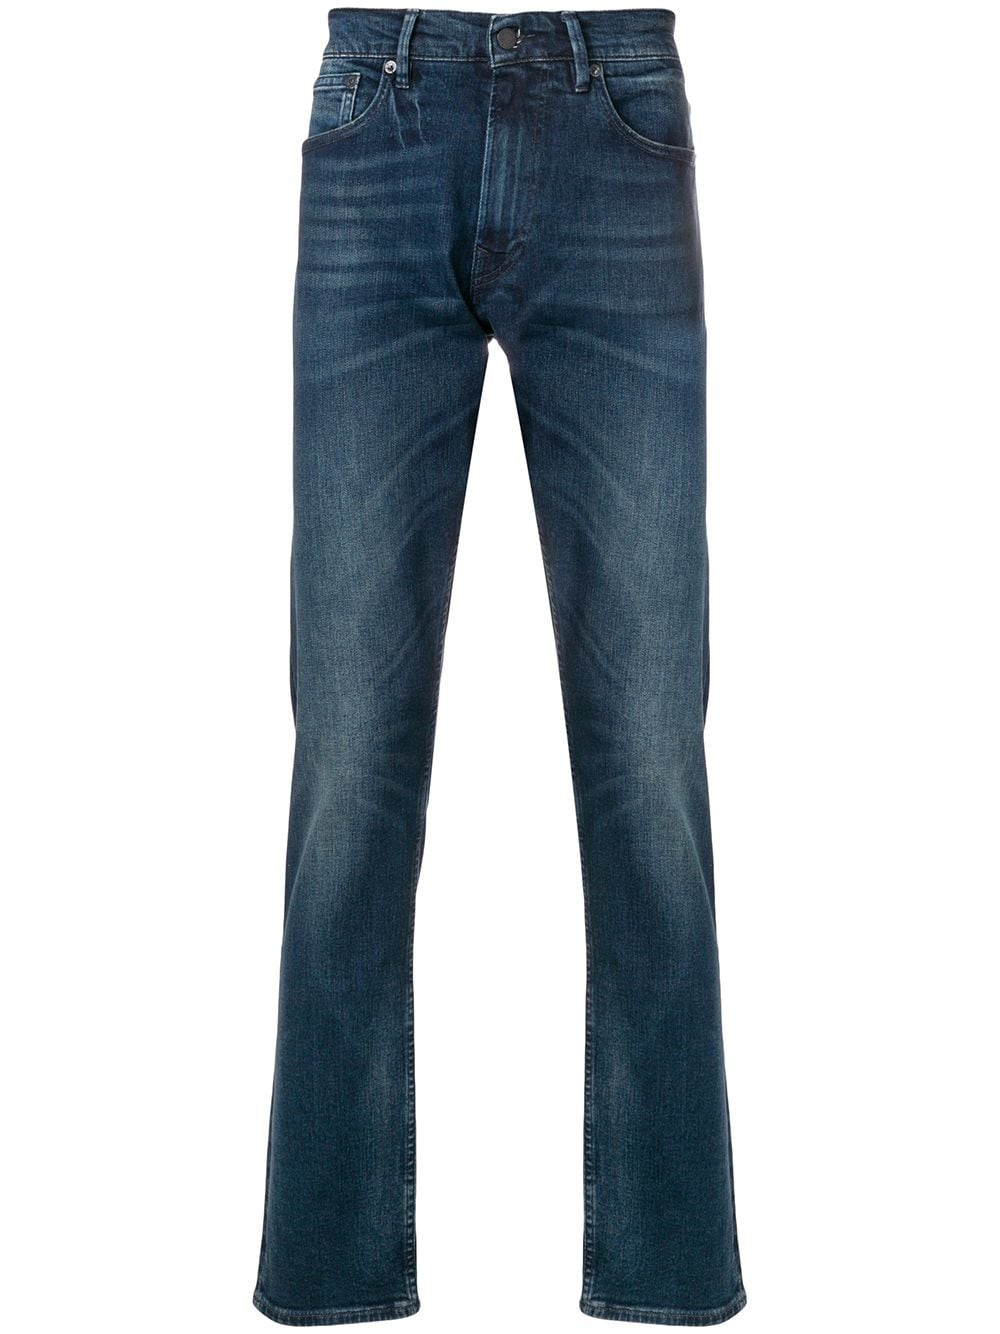 Polo Ralph Lauren straight leg jeans - Blue von Polo Ralph Lauren